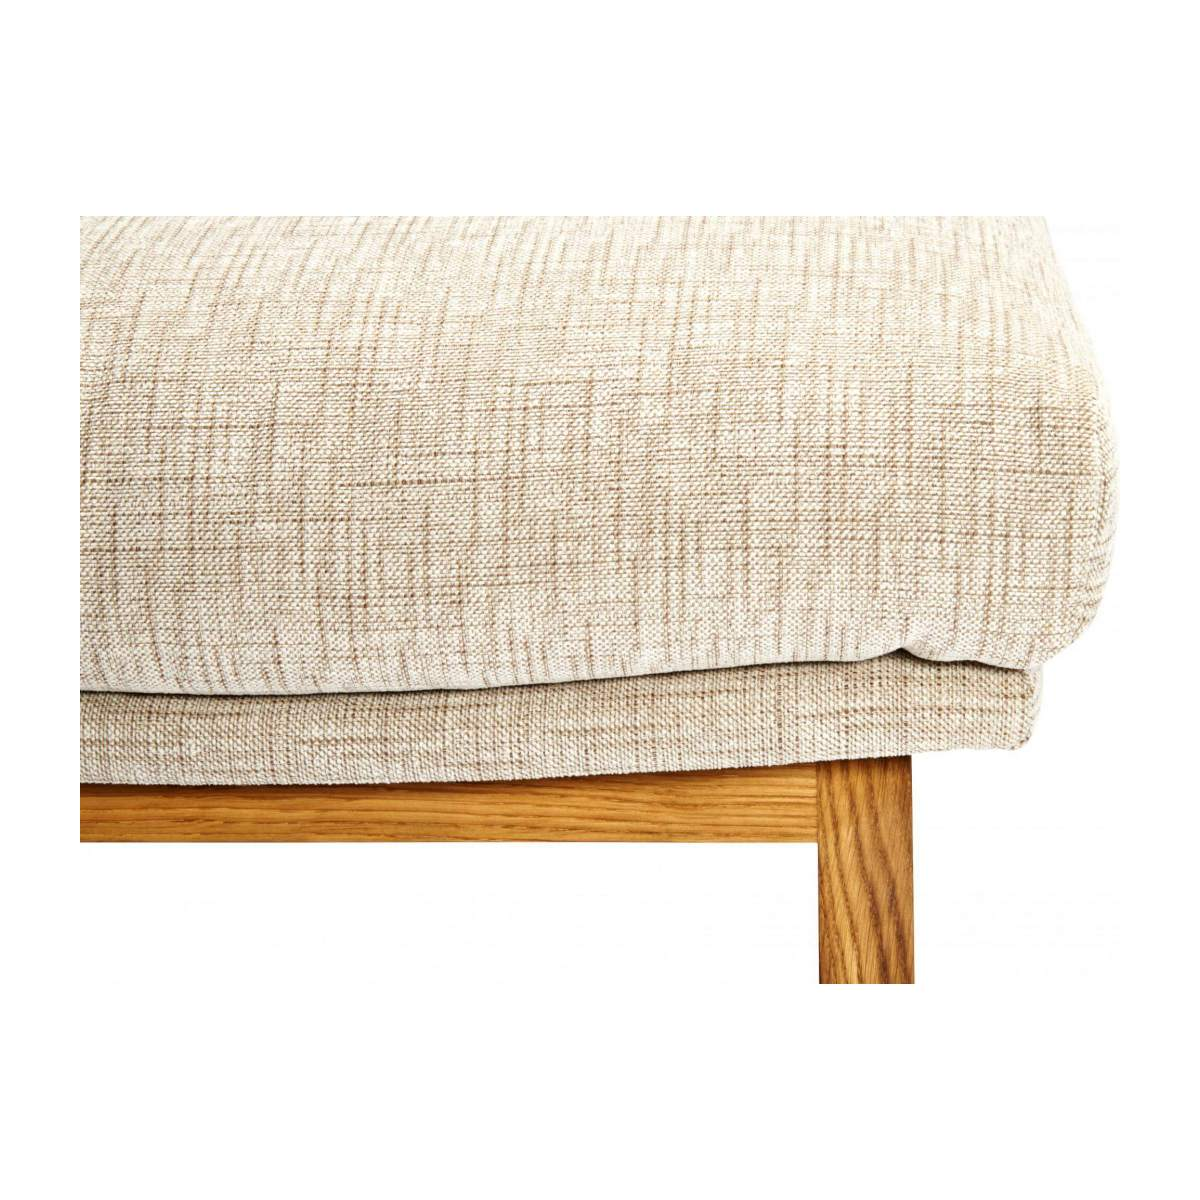 Footstool in Ancio fabric, nature with oak legs n°6